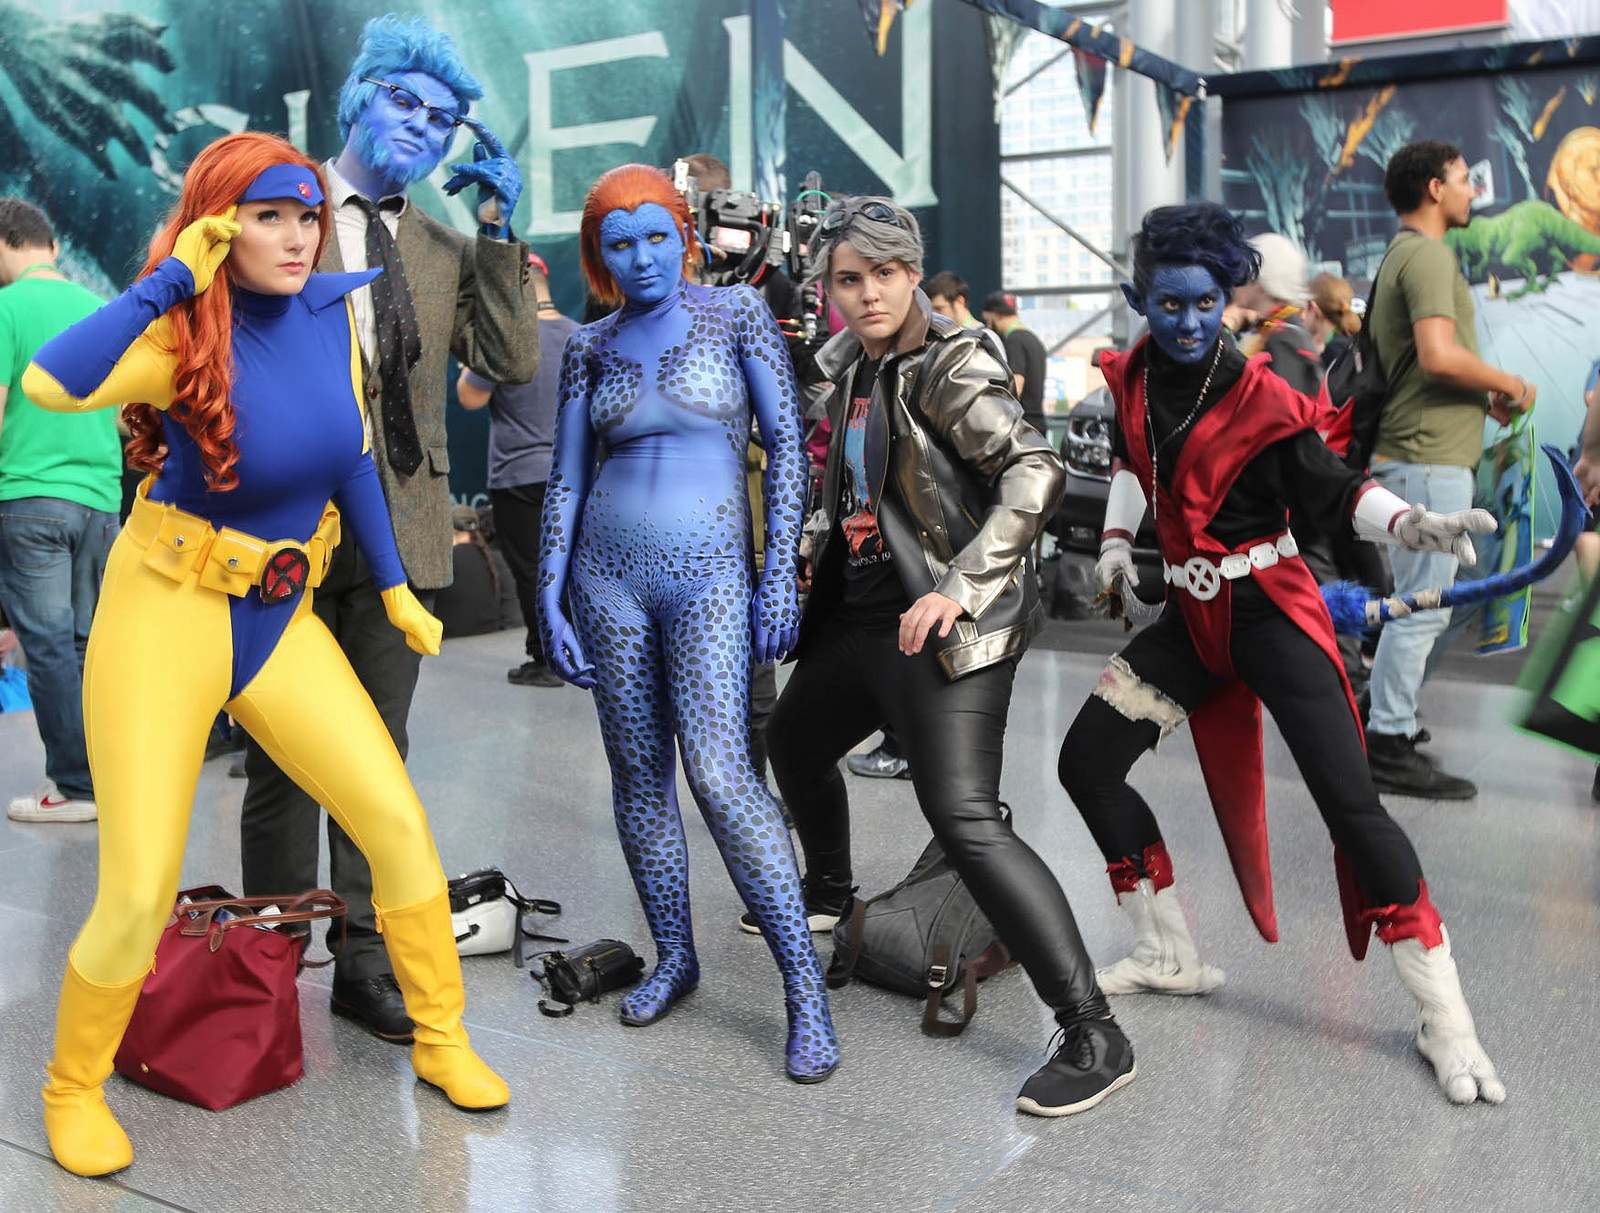 nycc13 Best Costumes from Comic Con in New York 2017